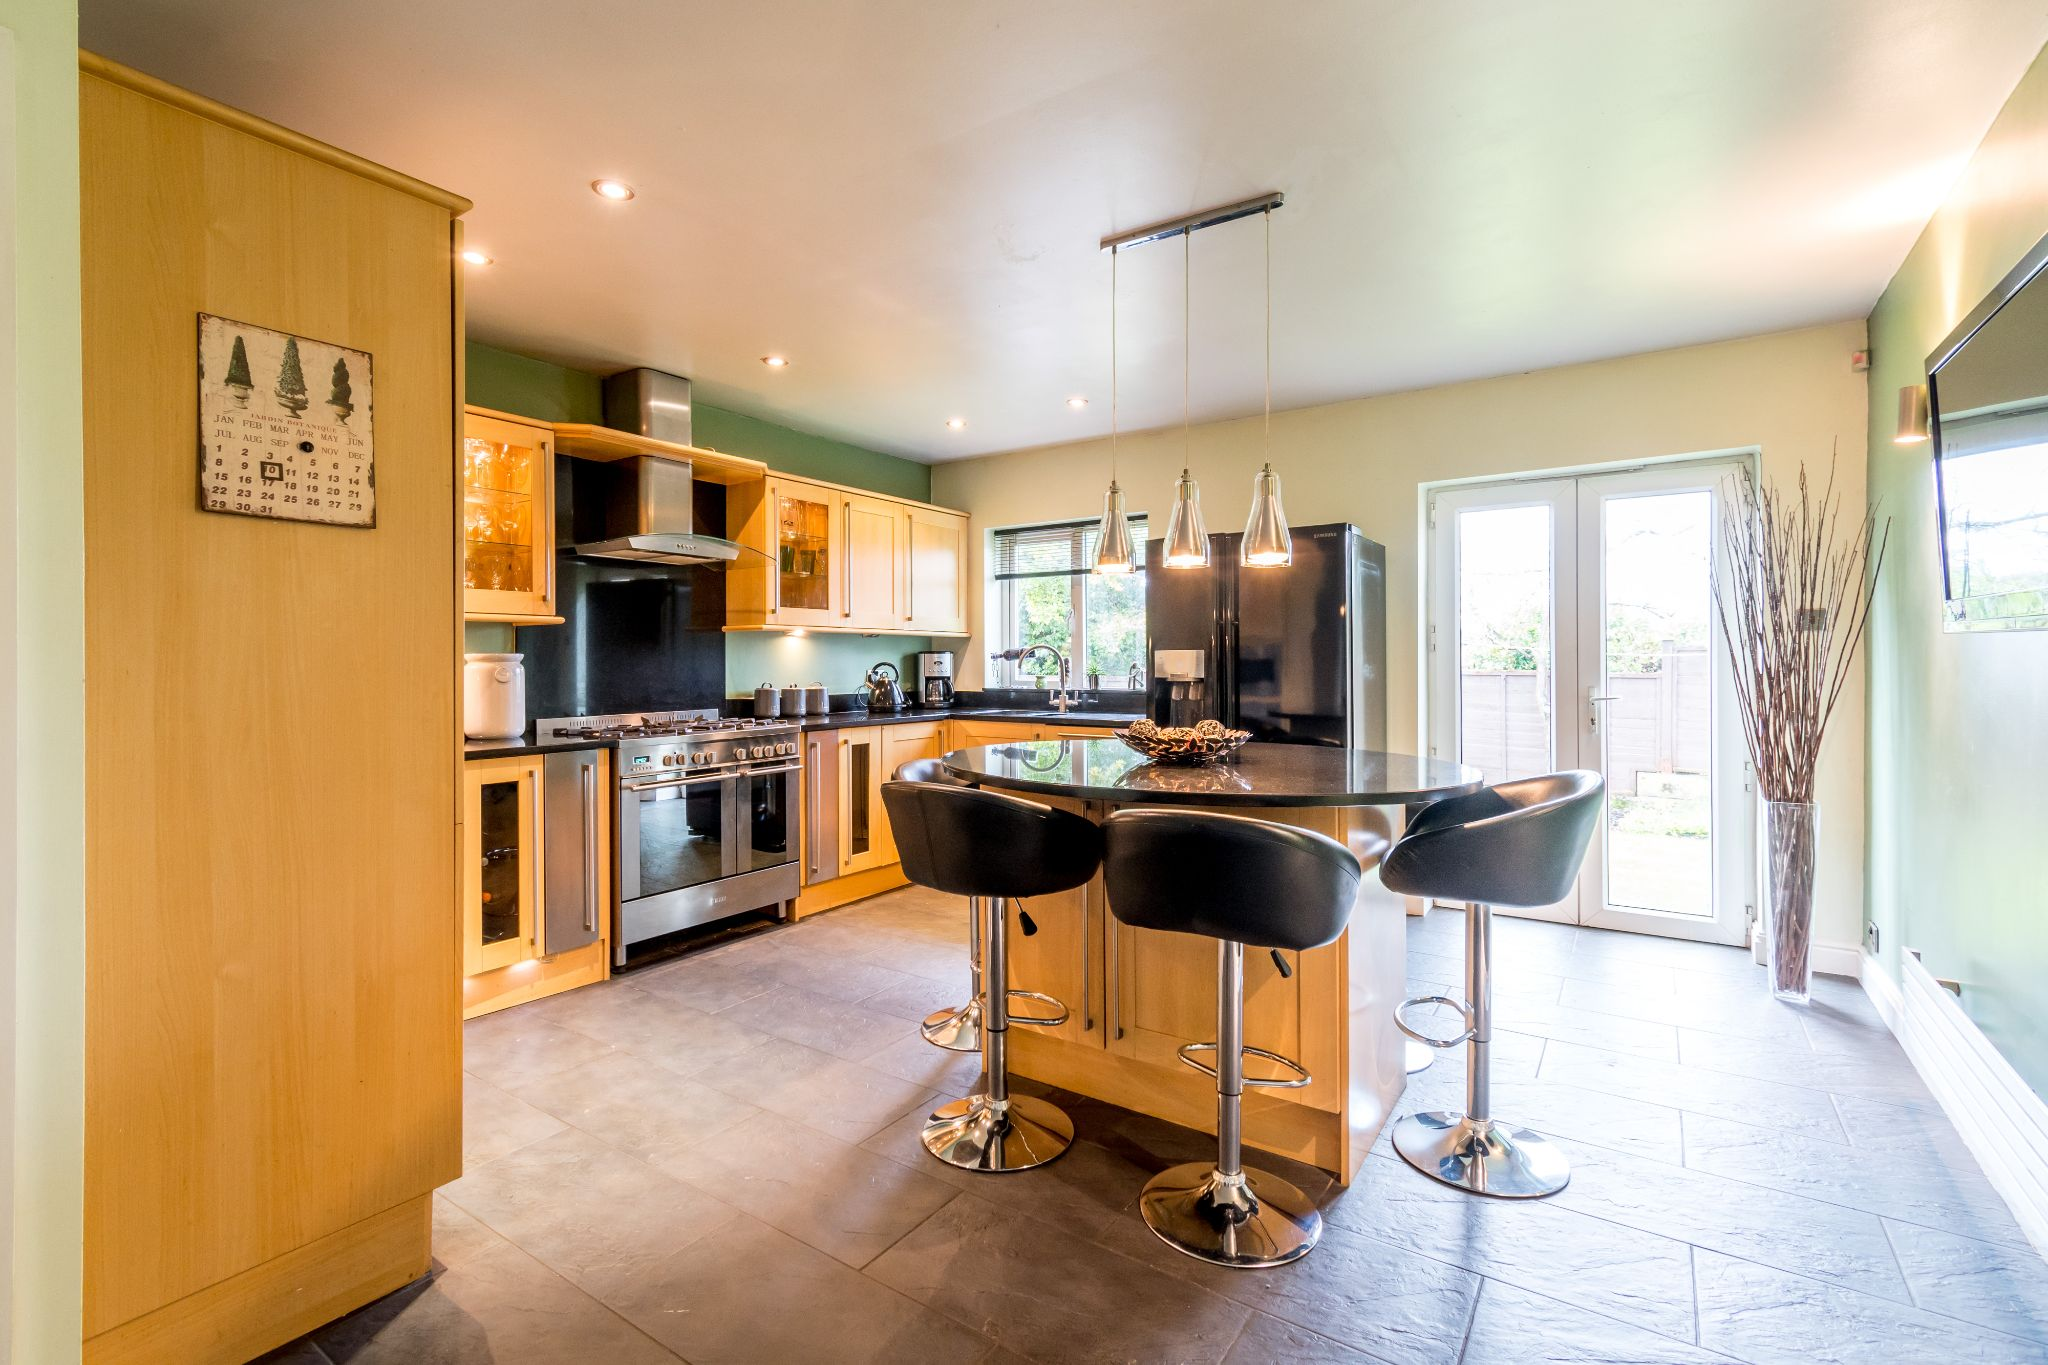 5 bedroom detached house For Sale in Brighouse - Dining kitchen